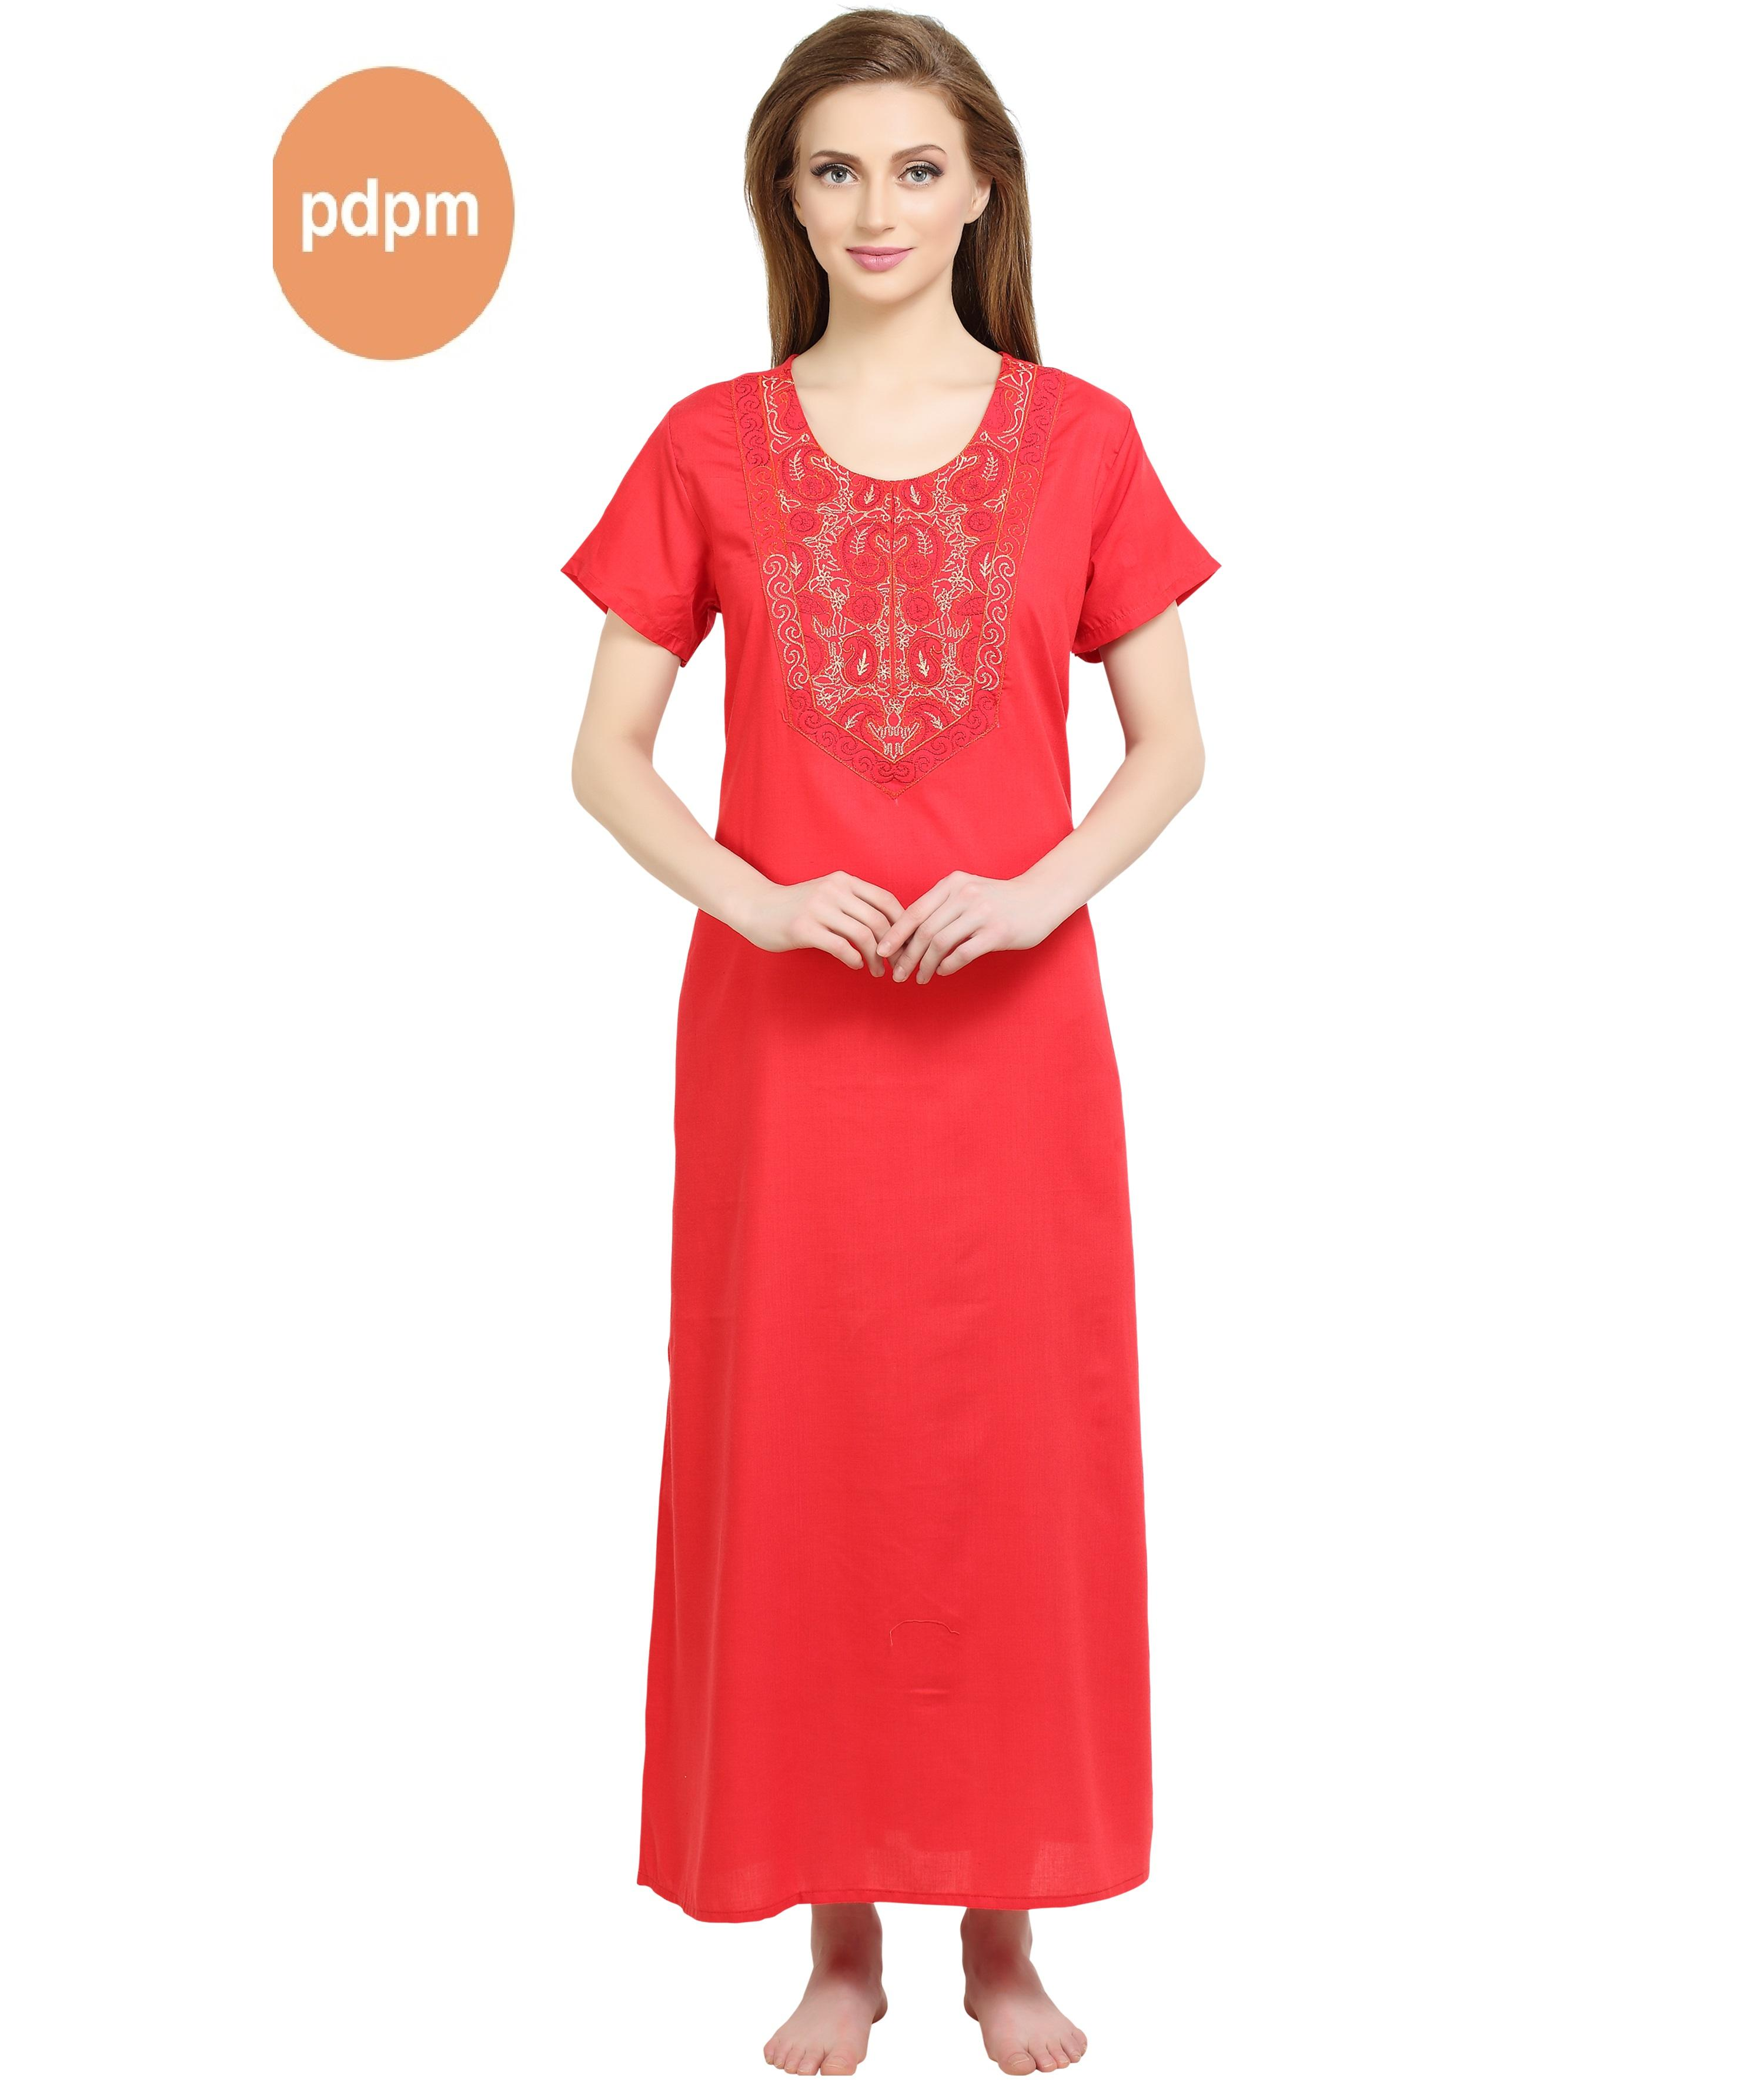 Cotton Nightgown For Women